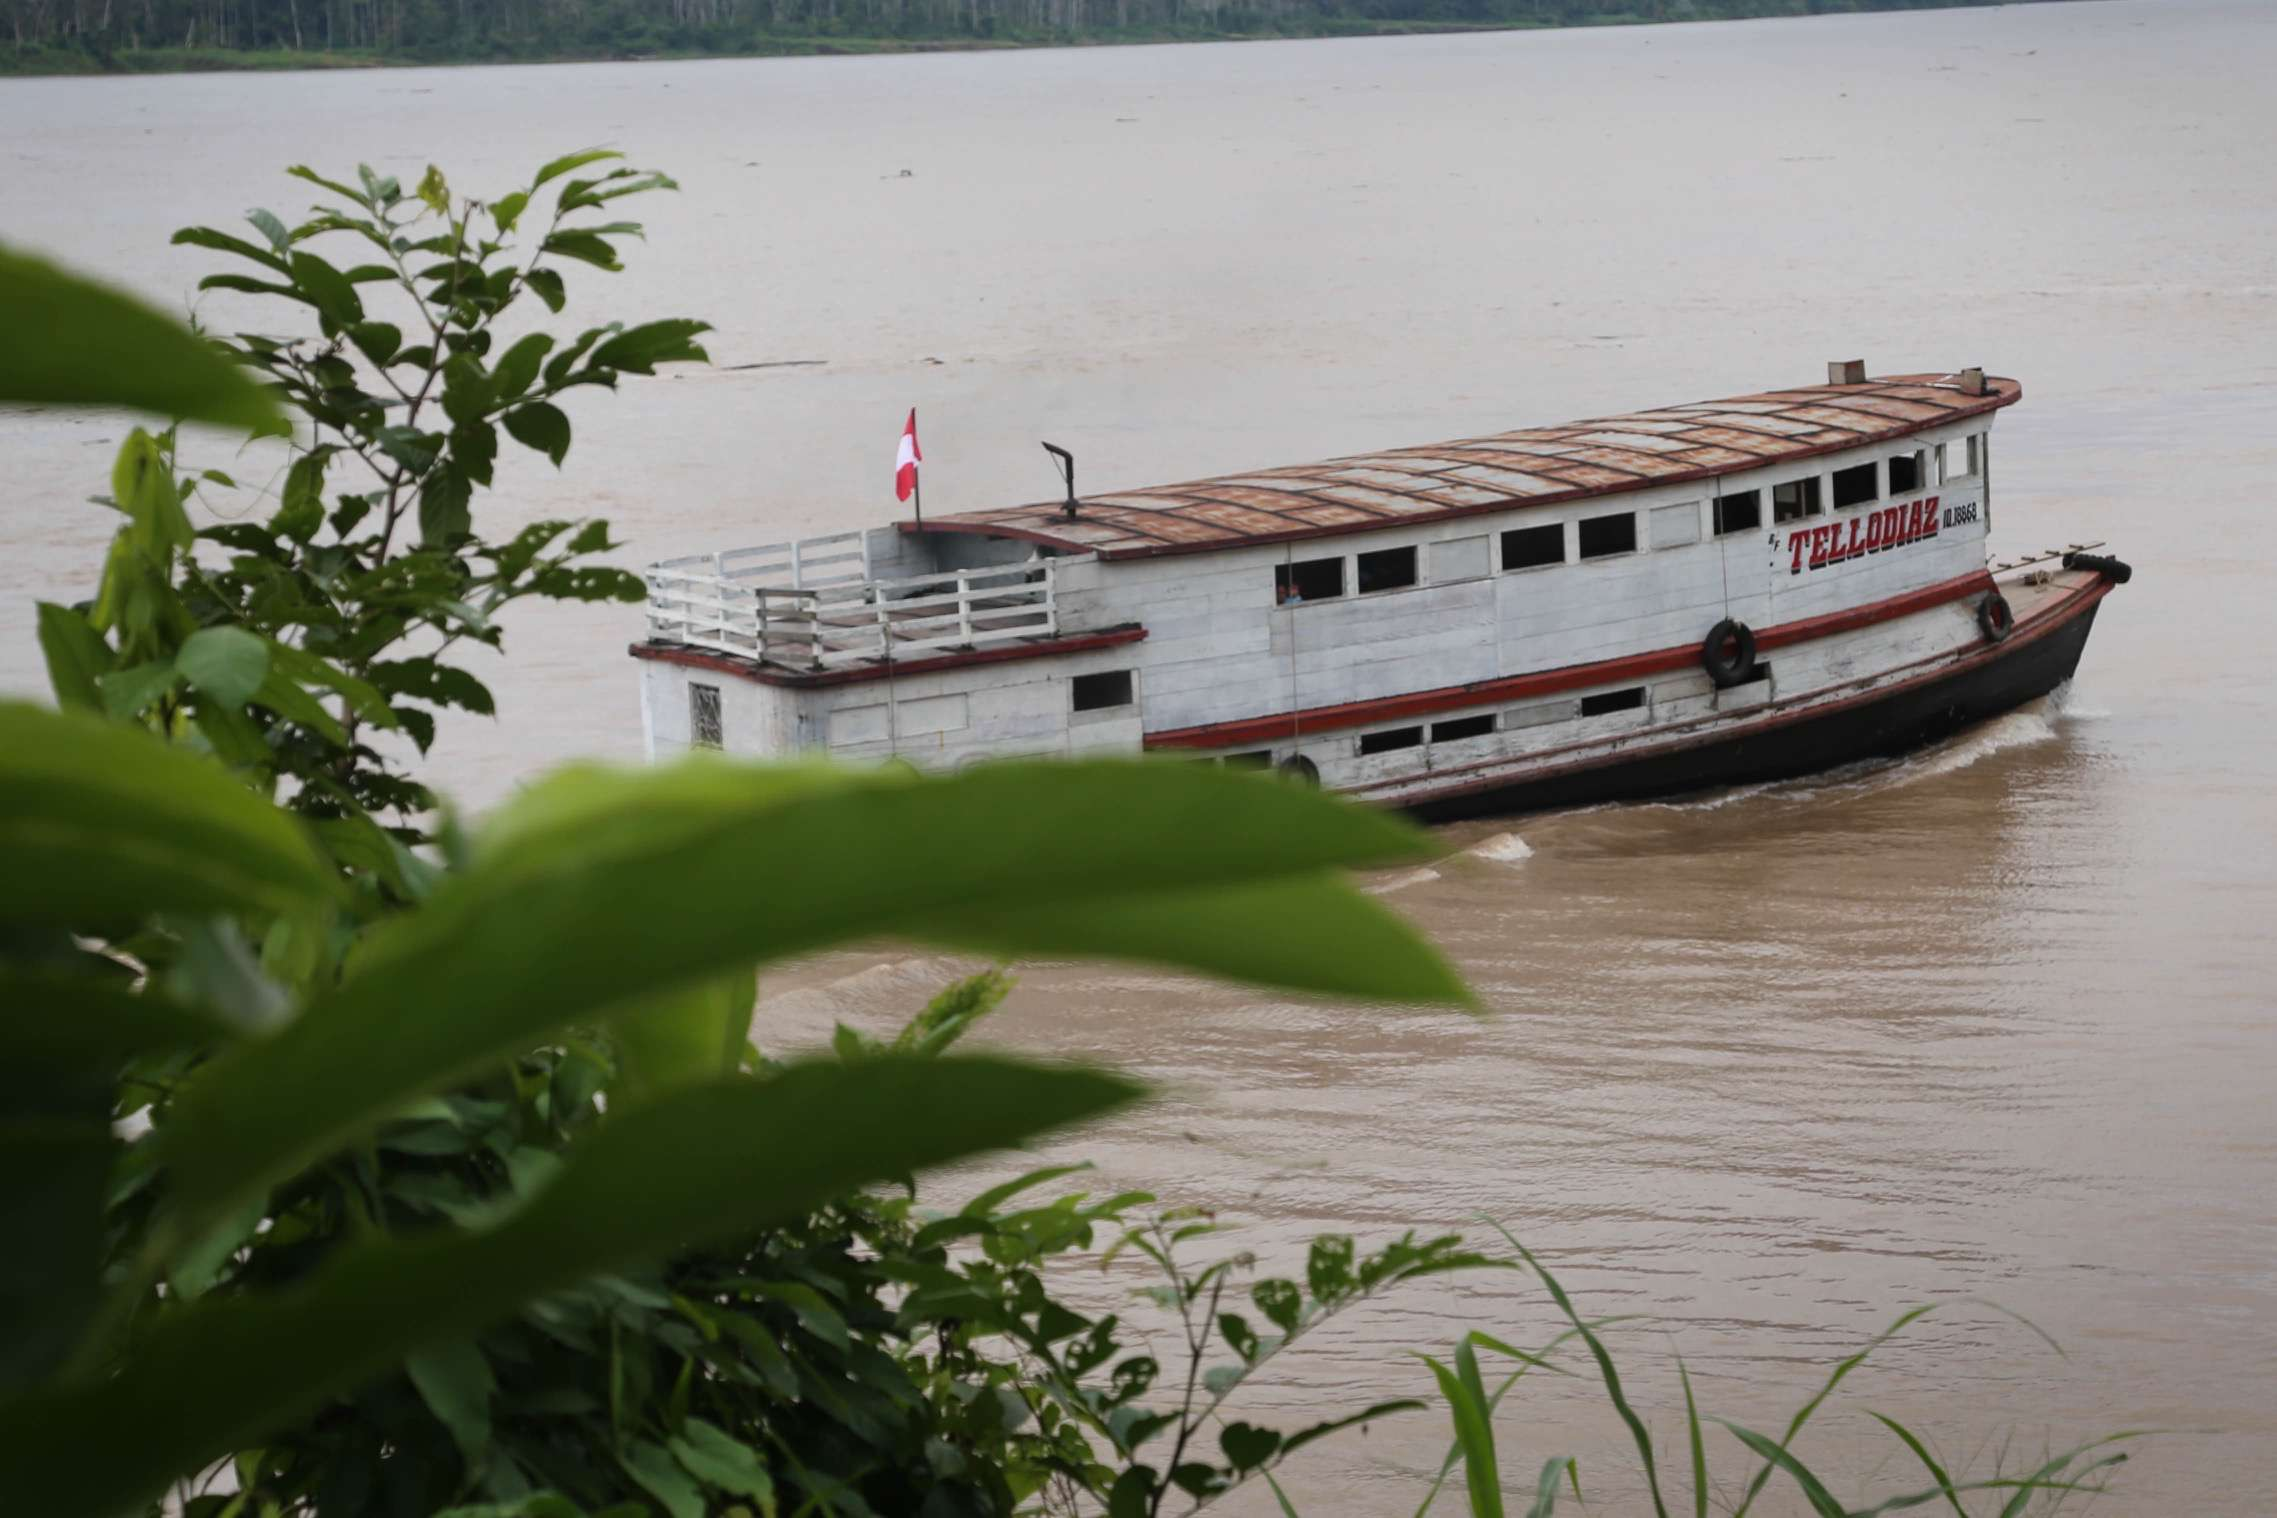 A water taxi plies the river, transporting people and cargo.